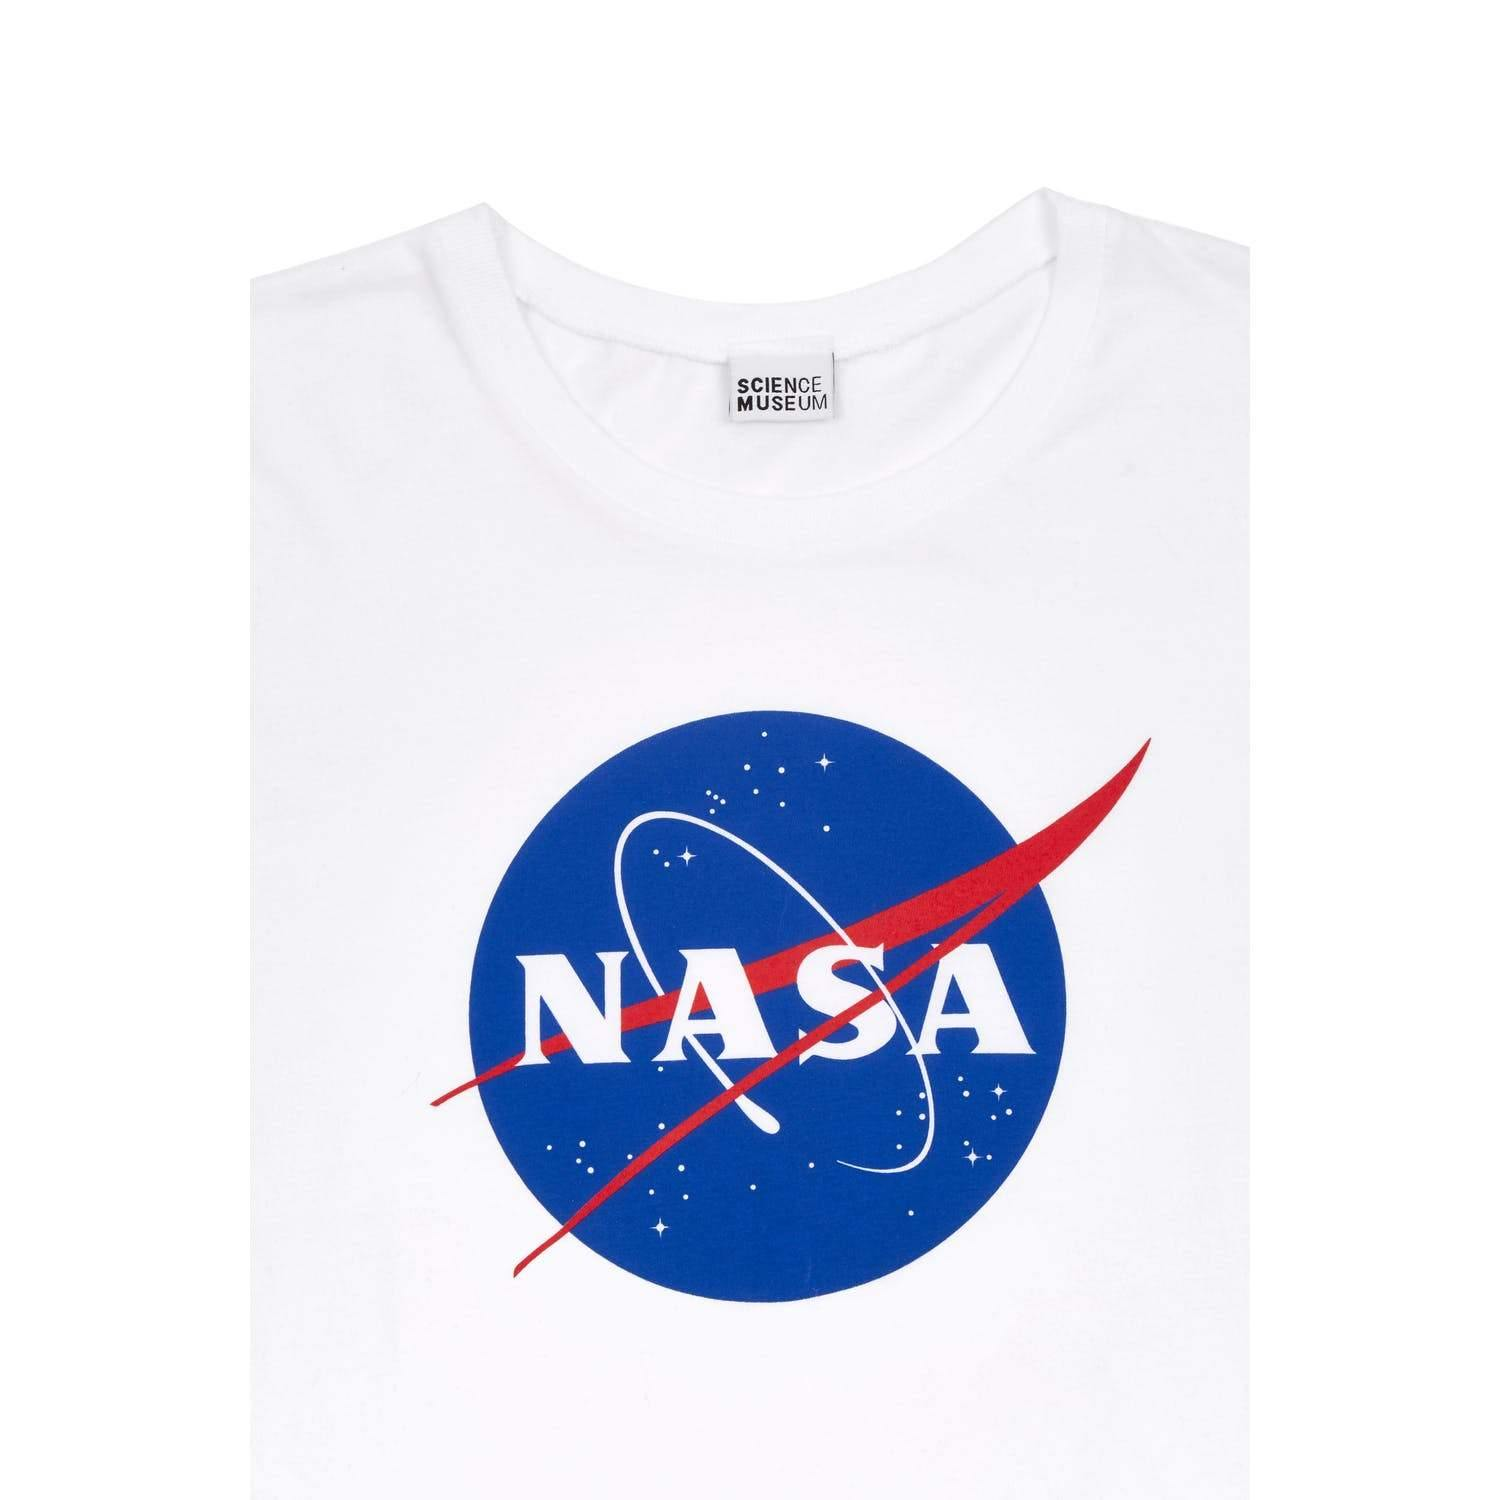 Science Museum NASA Meatball White Women's T-shirt